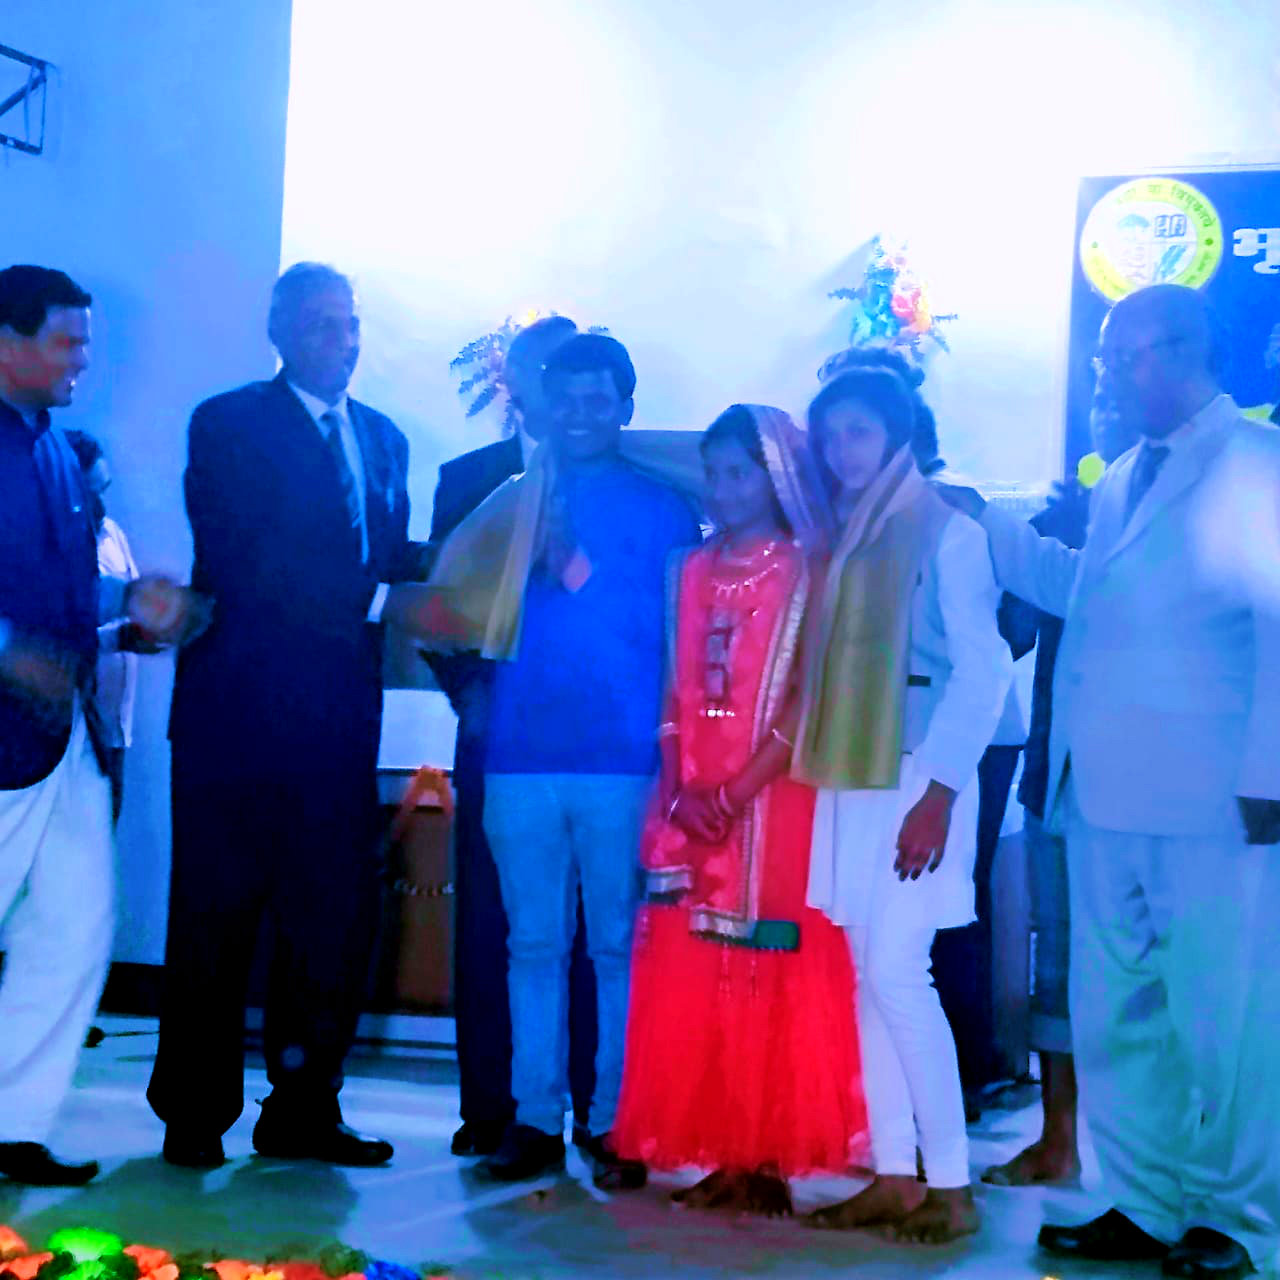 Honorable Vice-Chancellor Prof(Dr.) A.K.Roy encouraging the artists of Srijan Darpan in presence of BN Musta Secretary, Senator & Convenor Prof. (Dr.) Naresh Kumar, Pro. - VC Dr.Farooque Ali, DSW Dr.Sheomuni Yadav & others.